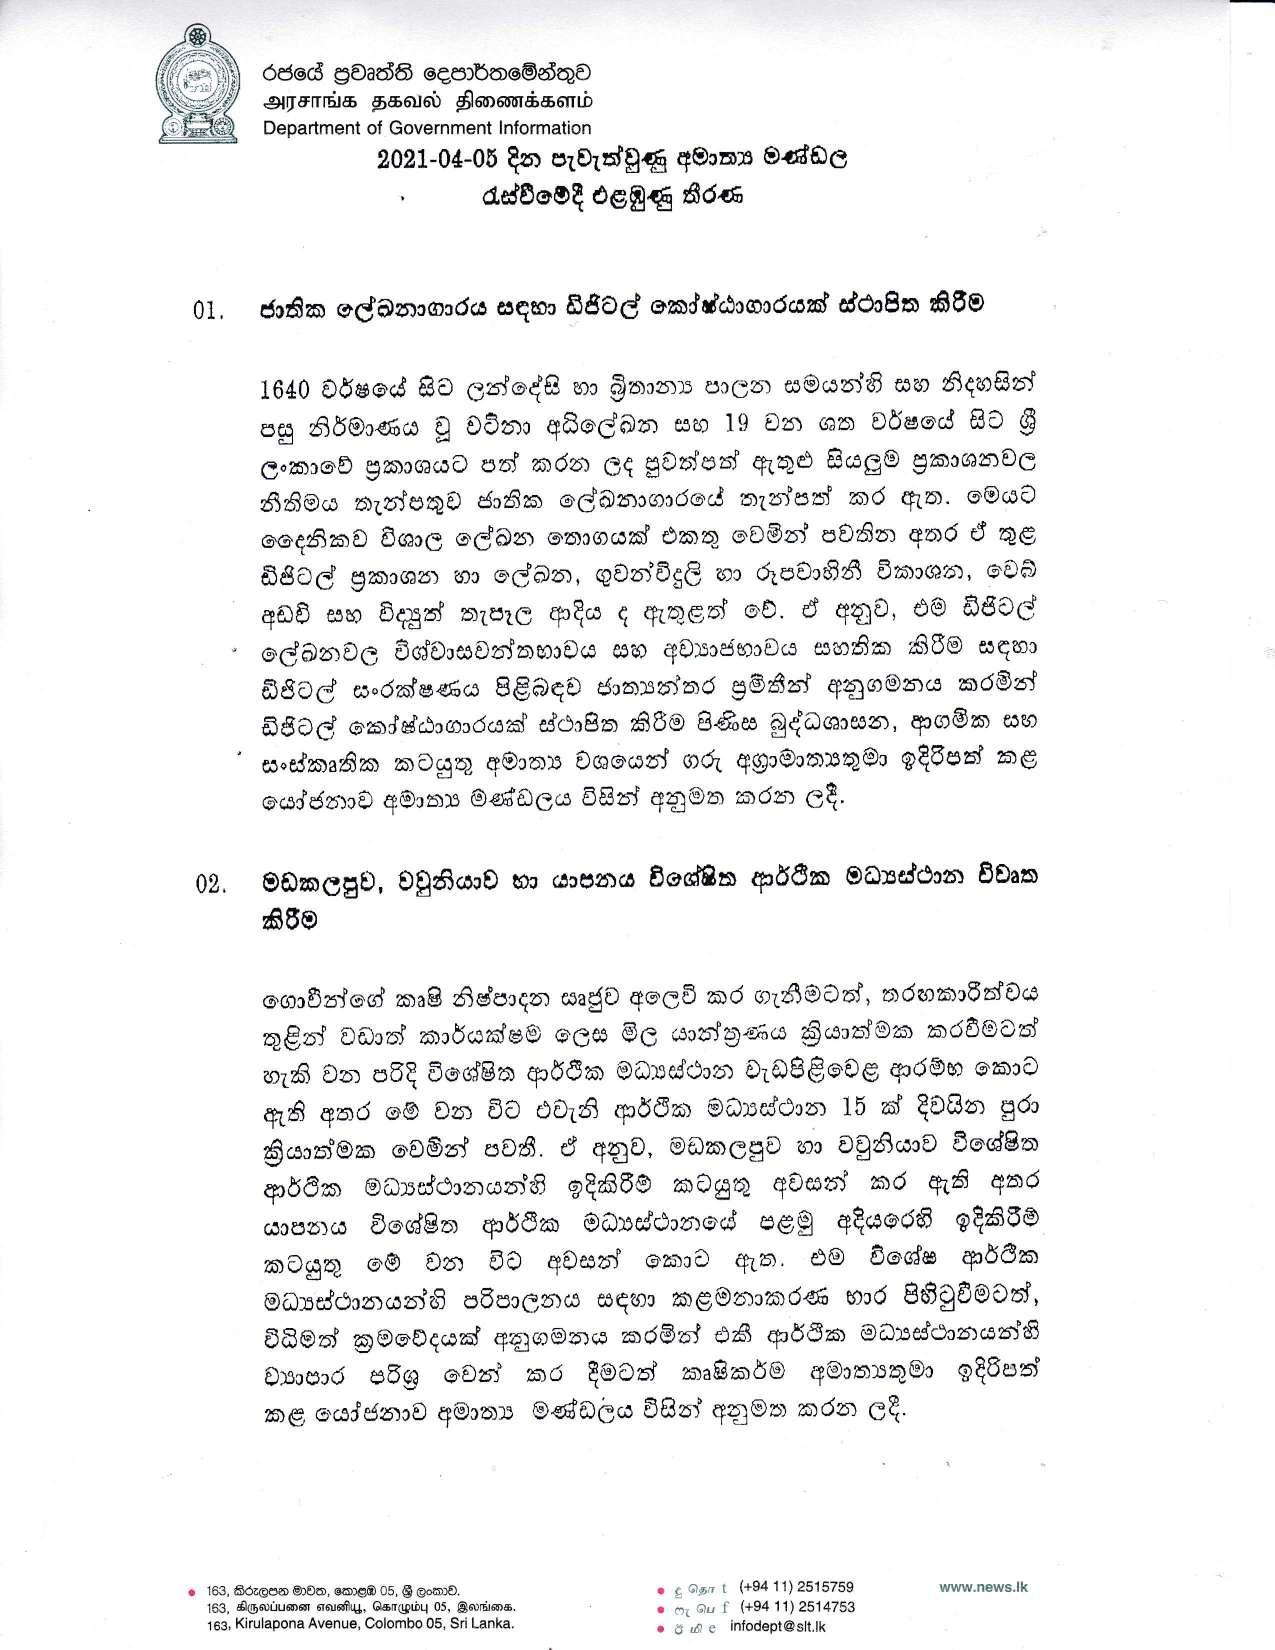 Cabinet Decision on 05.04.2021 Sinhala page 001